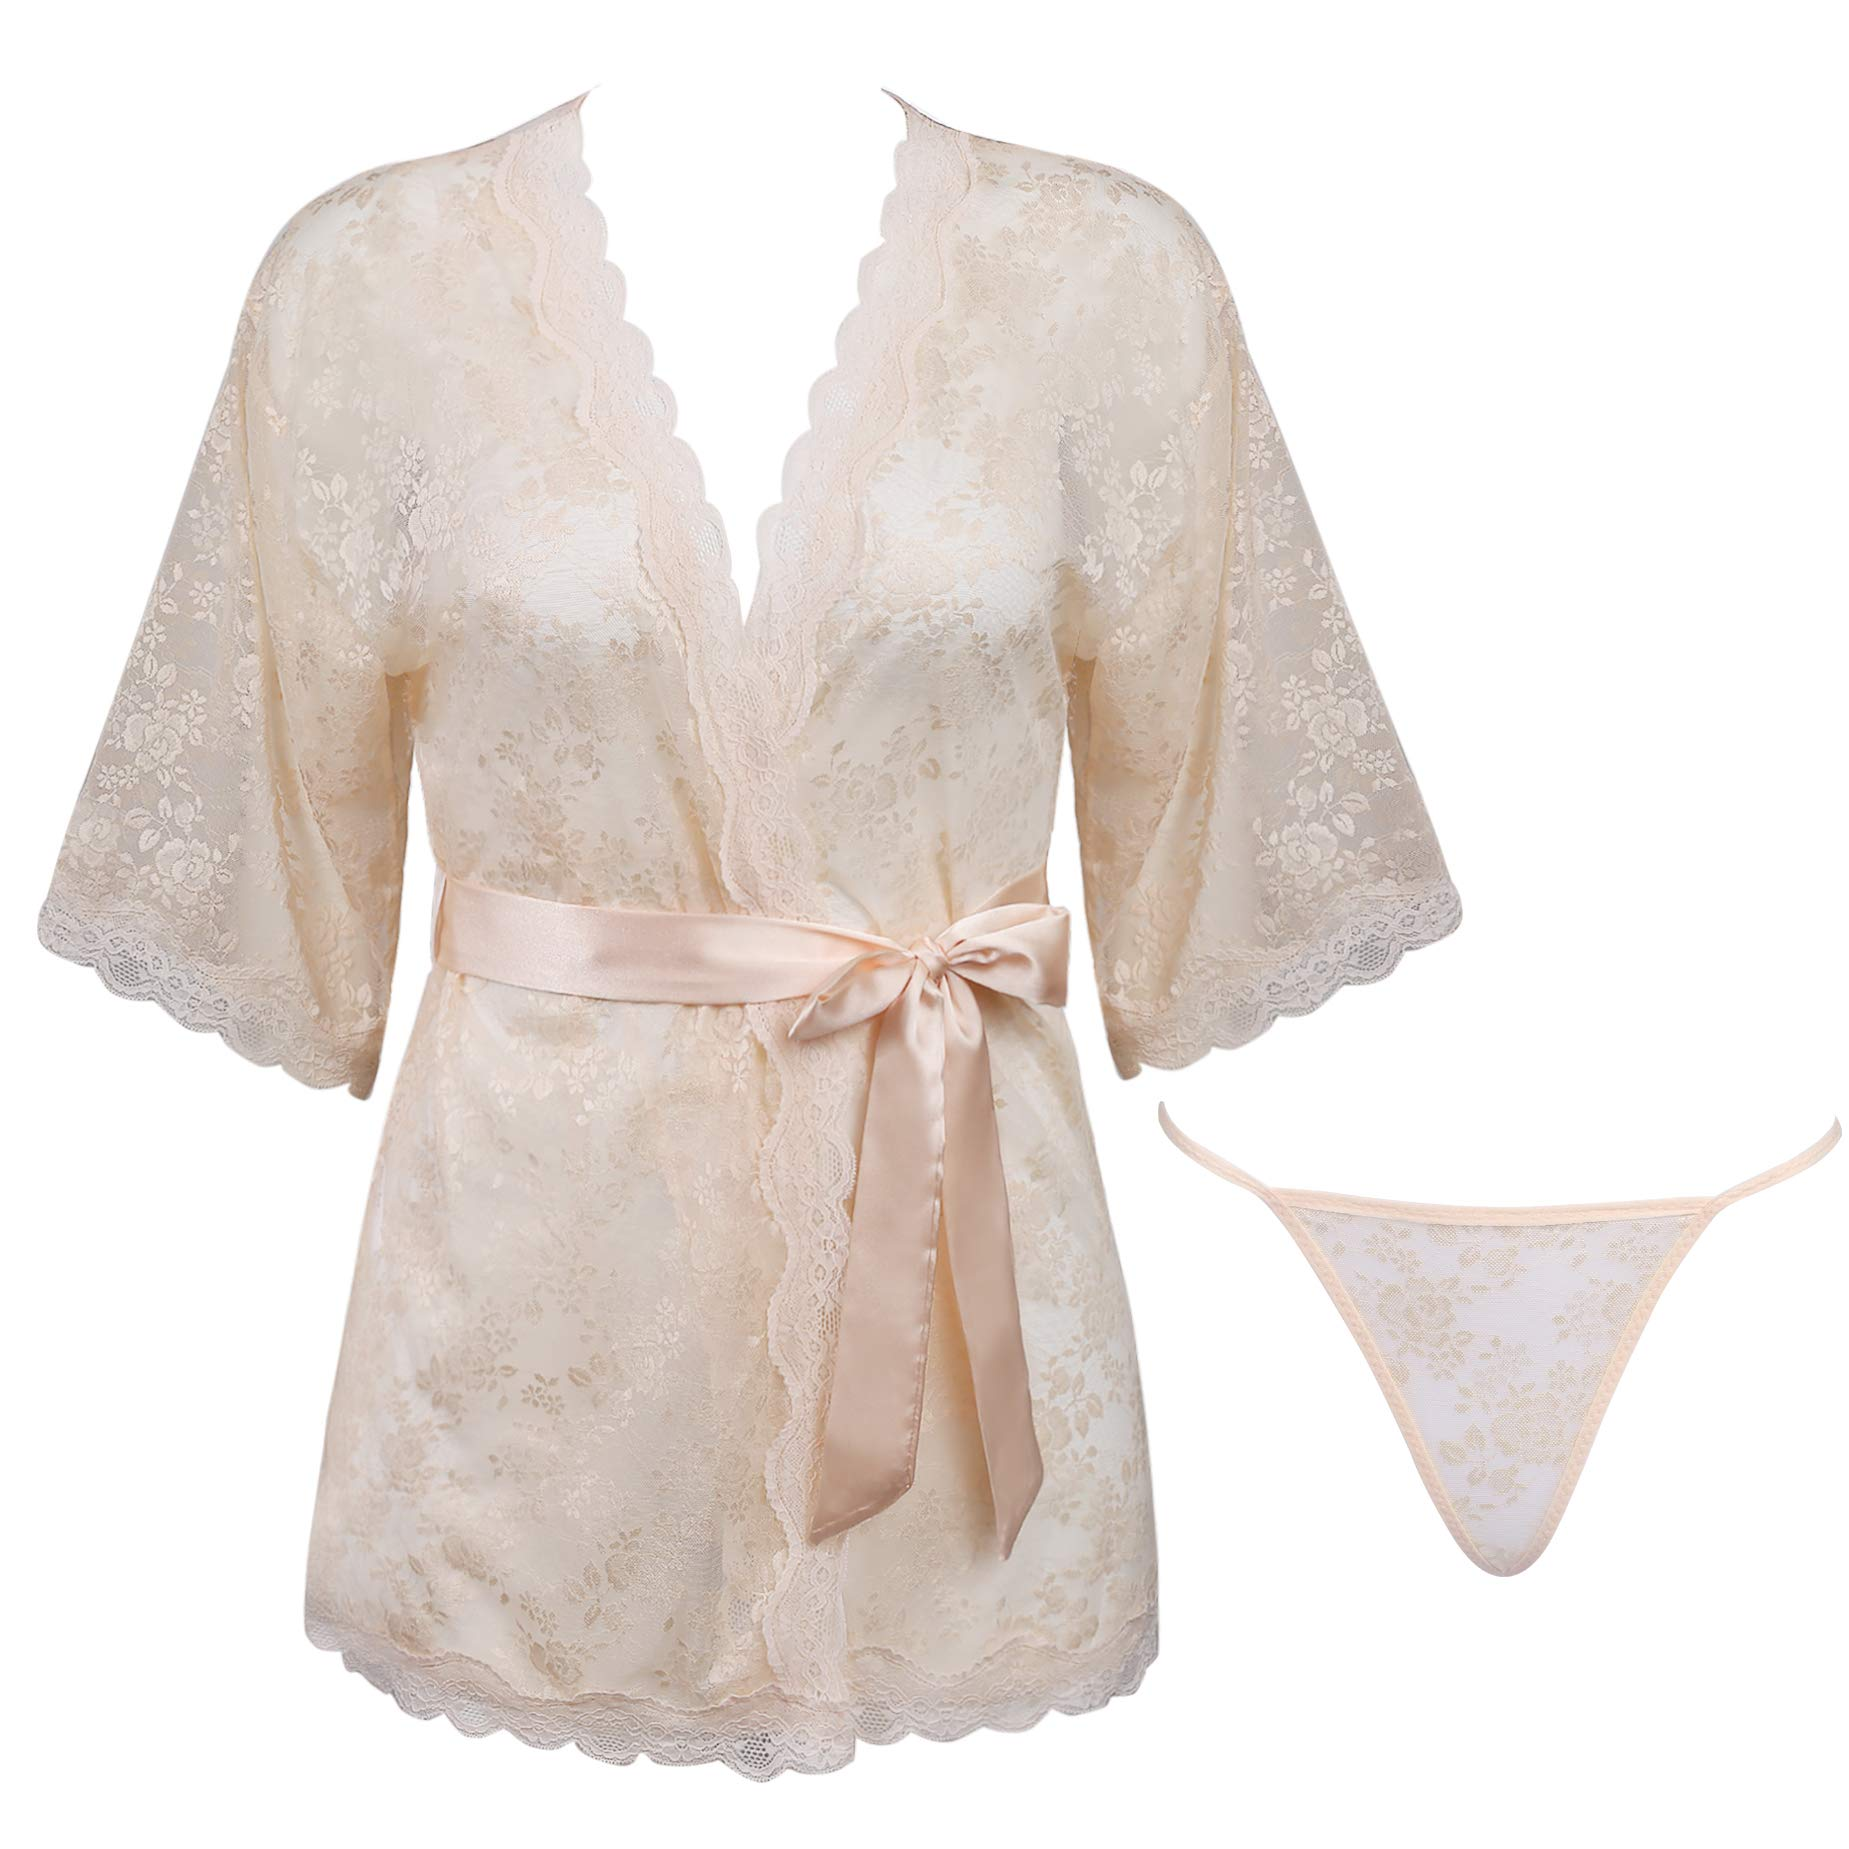 bed6ea4f0cacd Womens Sexy Lace Kimono Lingerie Robe Mesh Babydoll Set Sheer Nightgown  (Light Pink, Large)